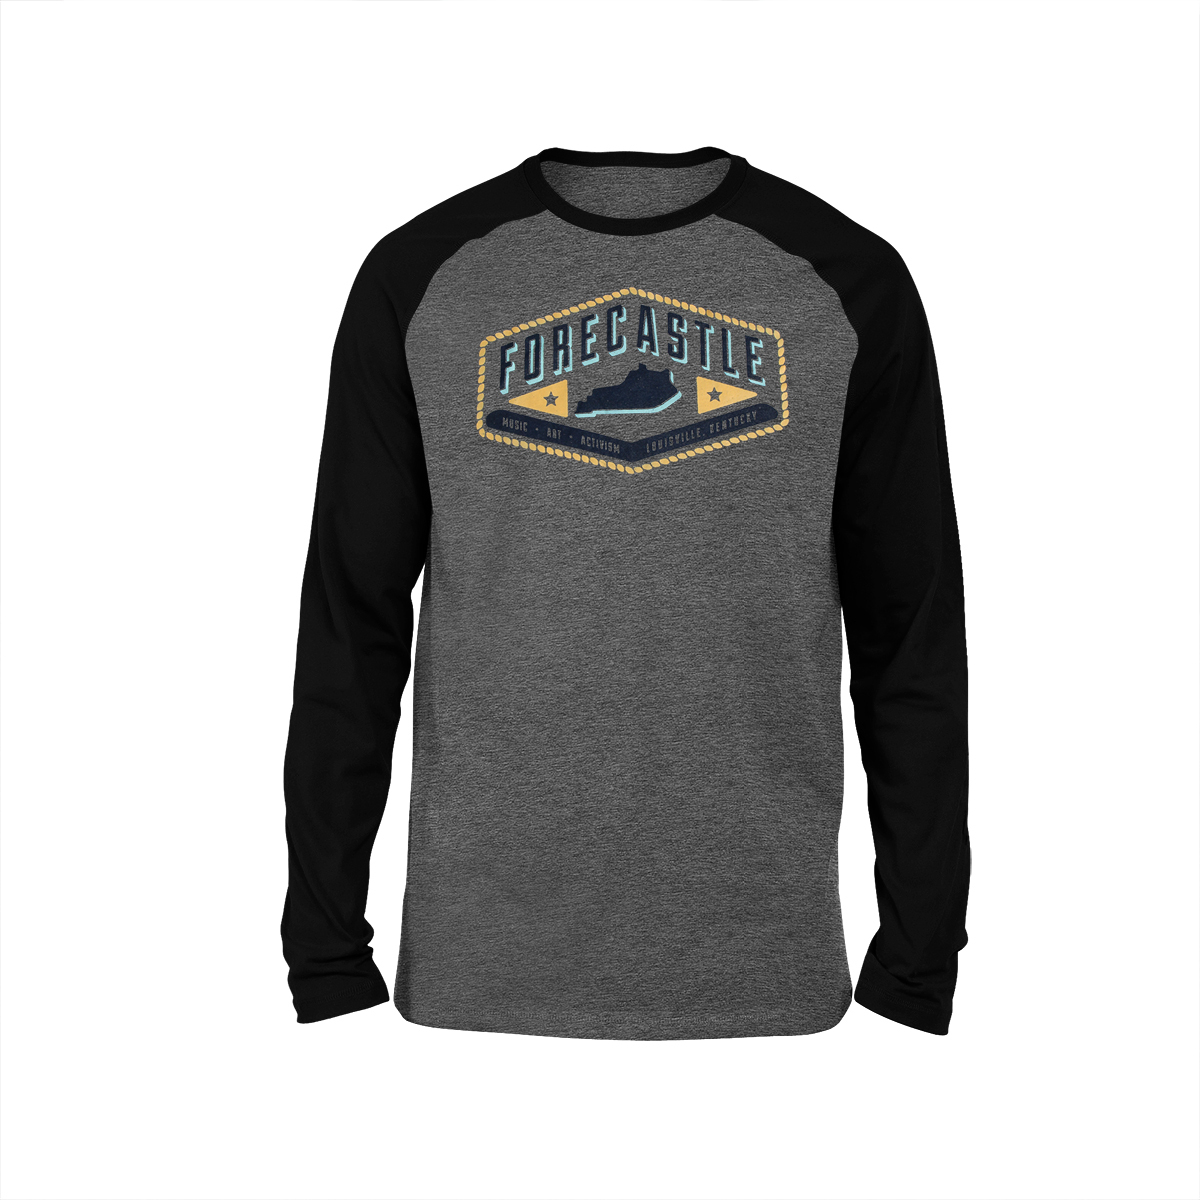 Forecastle 3/4 Sleeve Baseball Raglan Tee